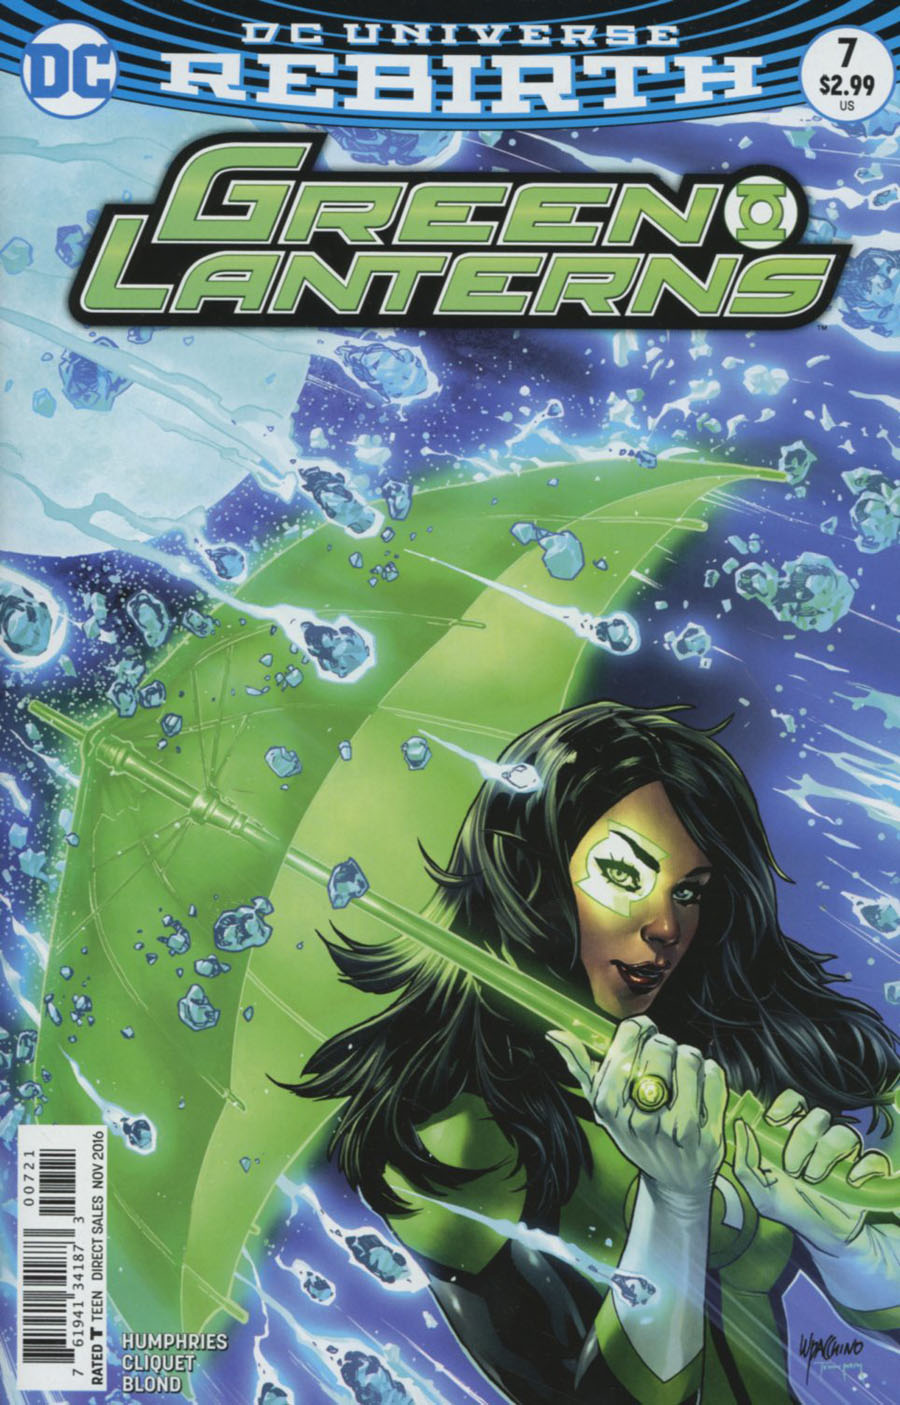 Green Lanterns #7 Cover B Variant Emanuela Lupacchino Cover